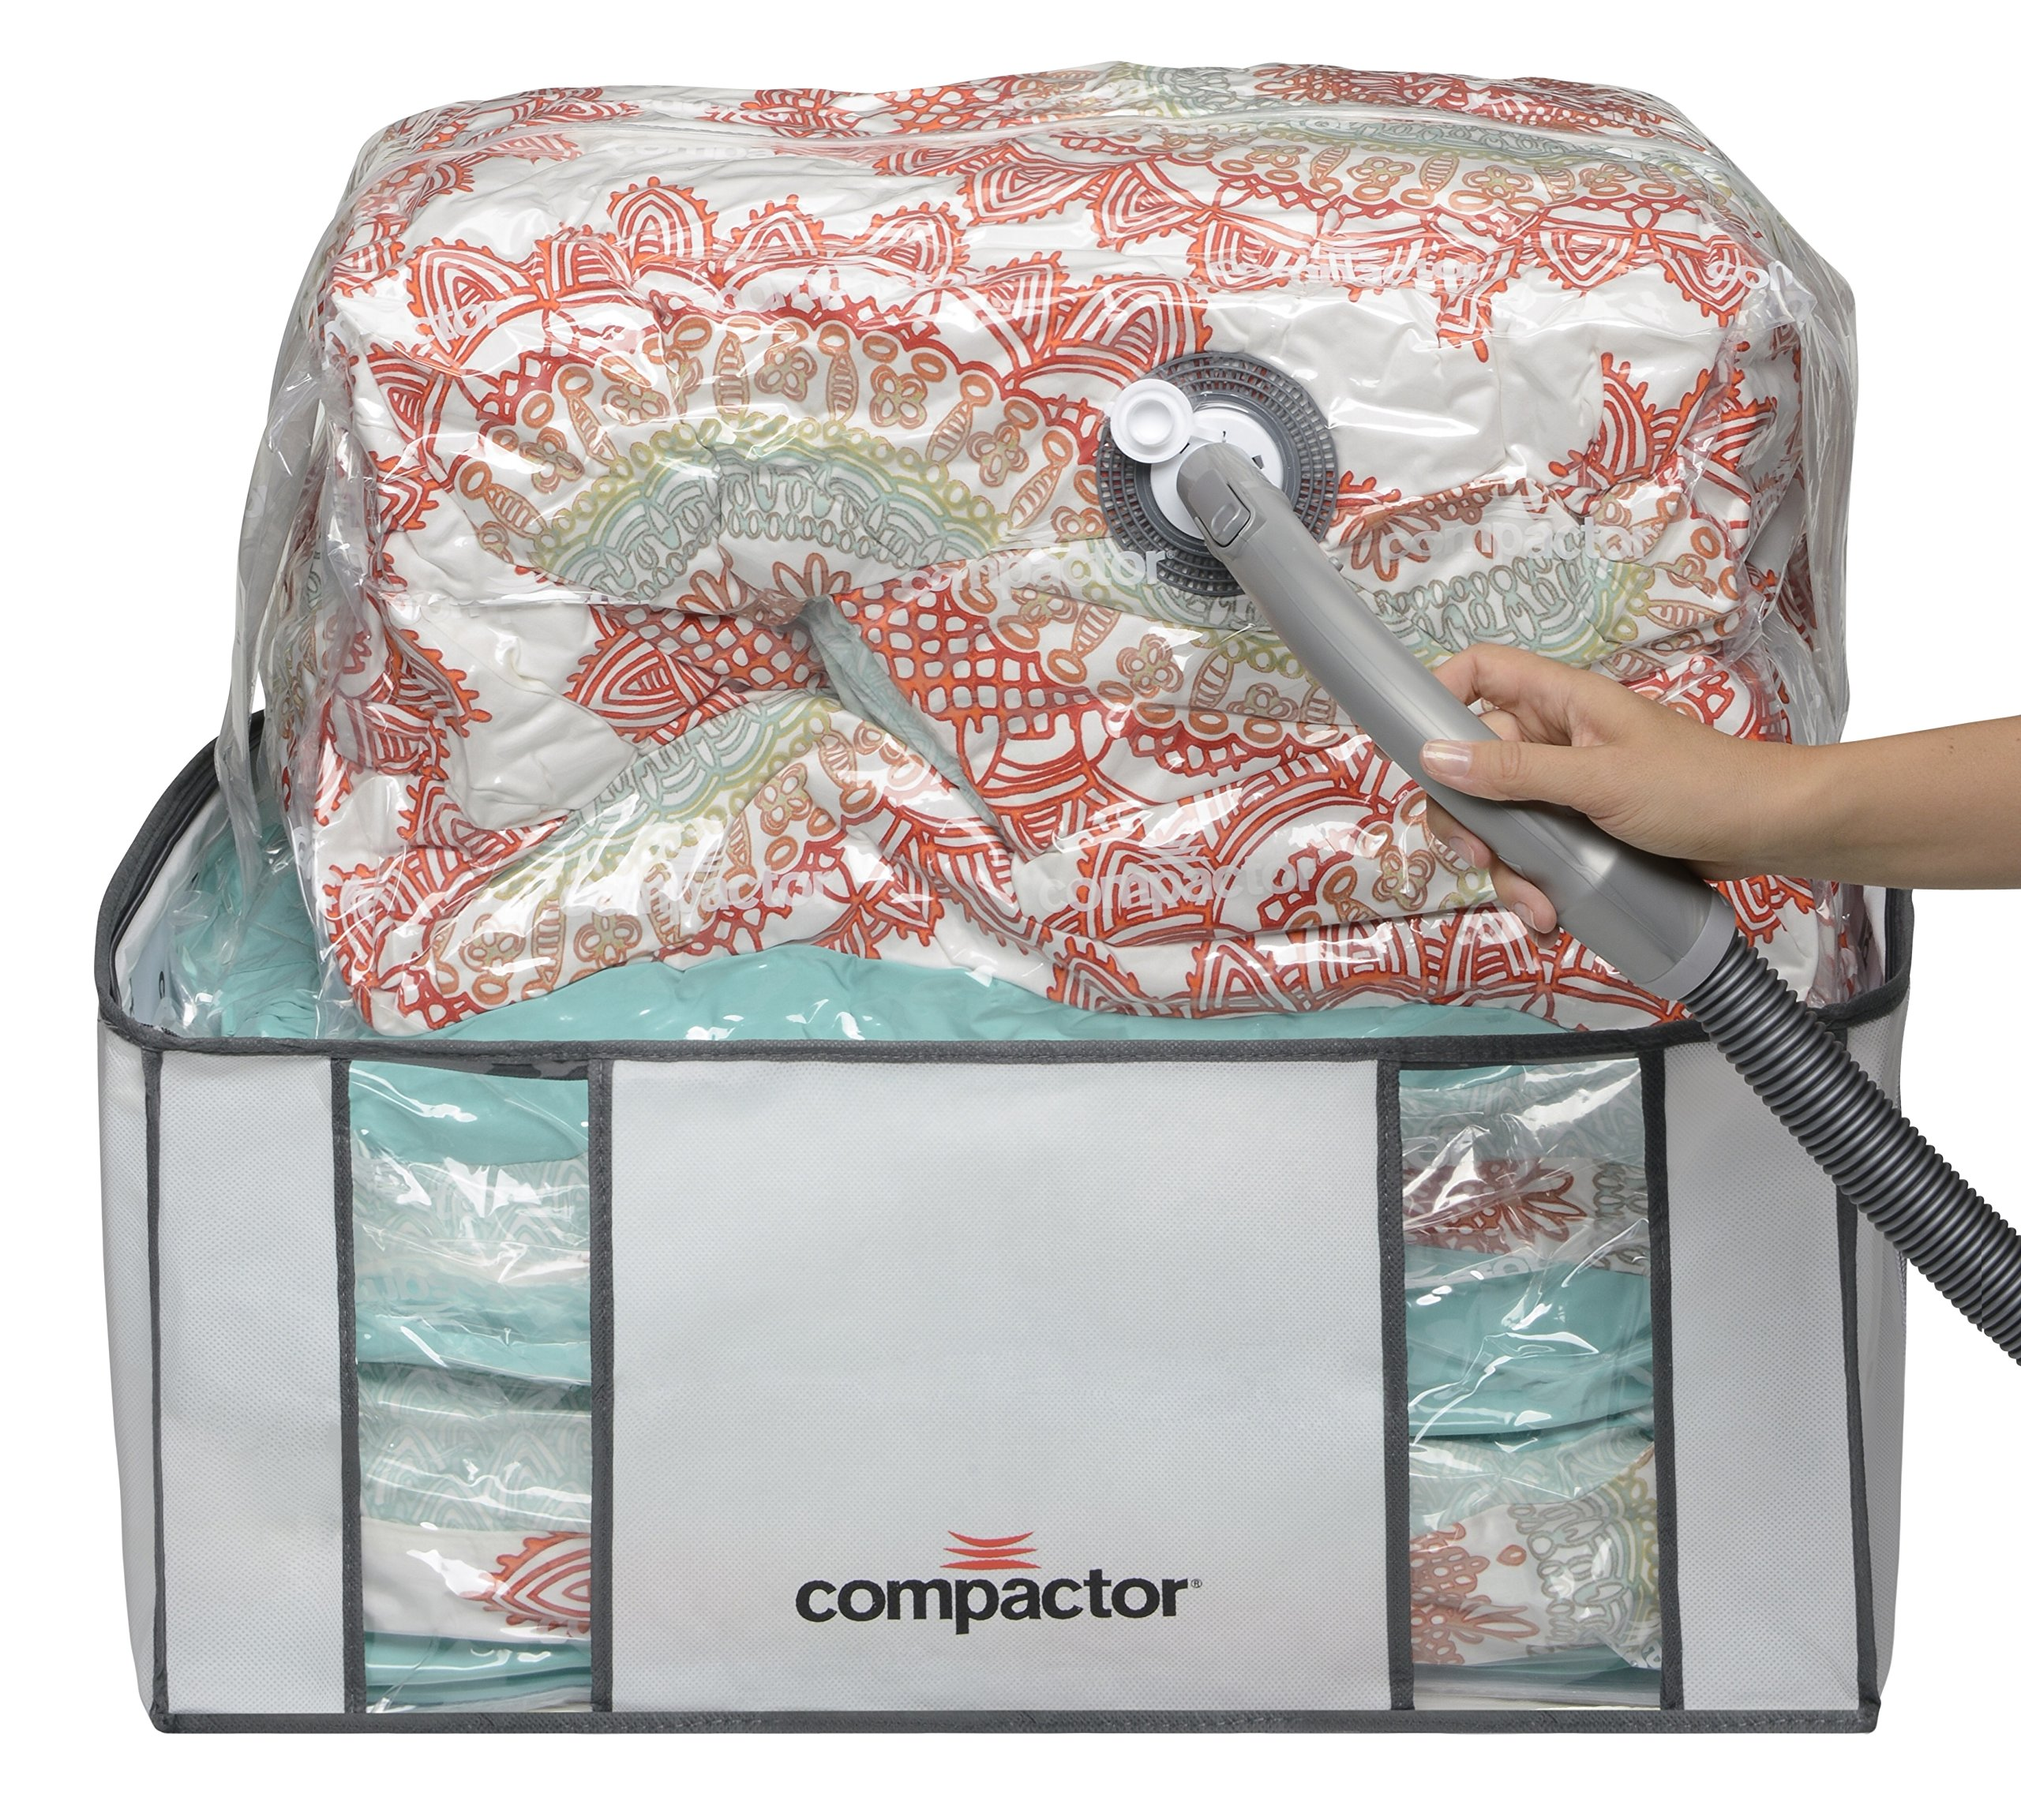 Compactor Space Saver Vacuum Storage Solution Vacuum Bag to Protect Clothes, Pillows, Duvets, Comforters, Blankets (XXL (26''x20''x11''), Classic White) by Compactor (Image #1)